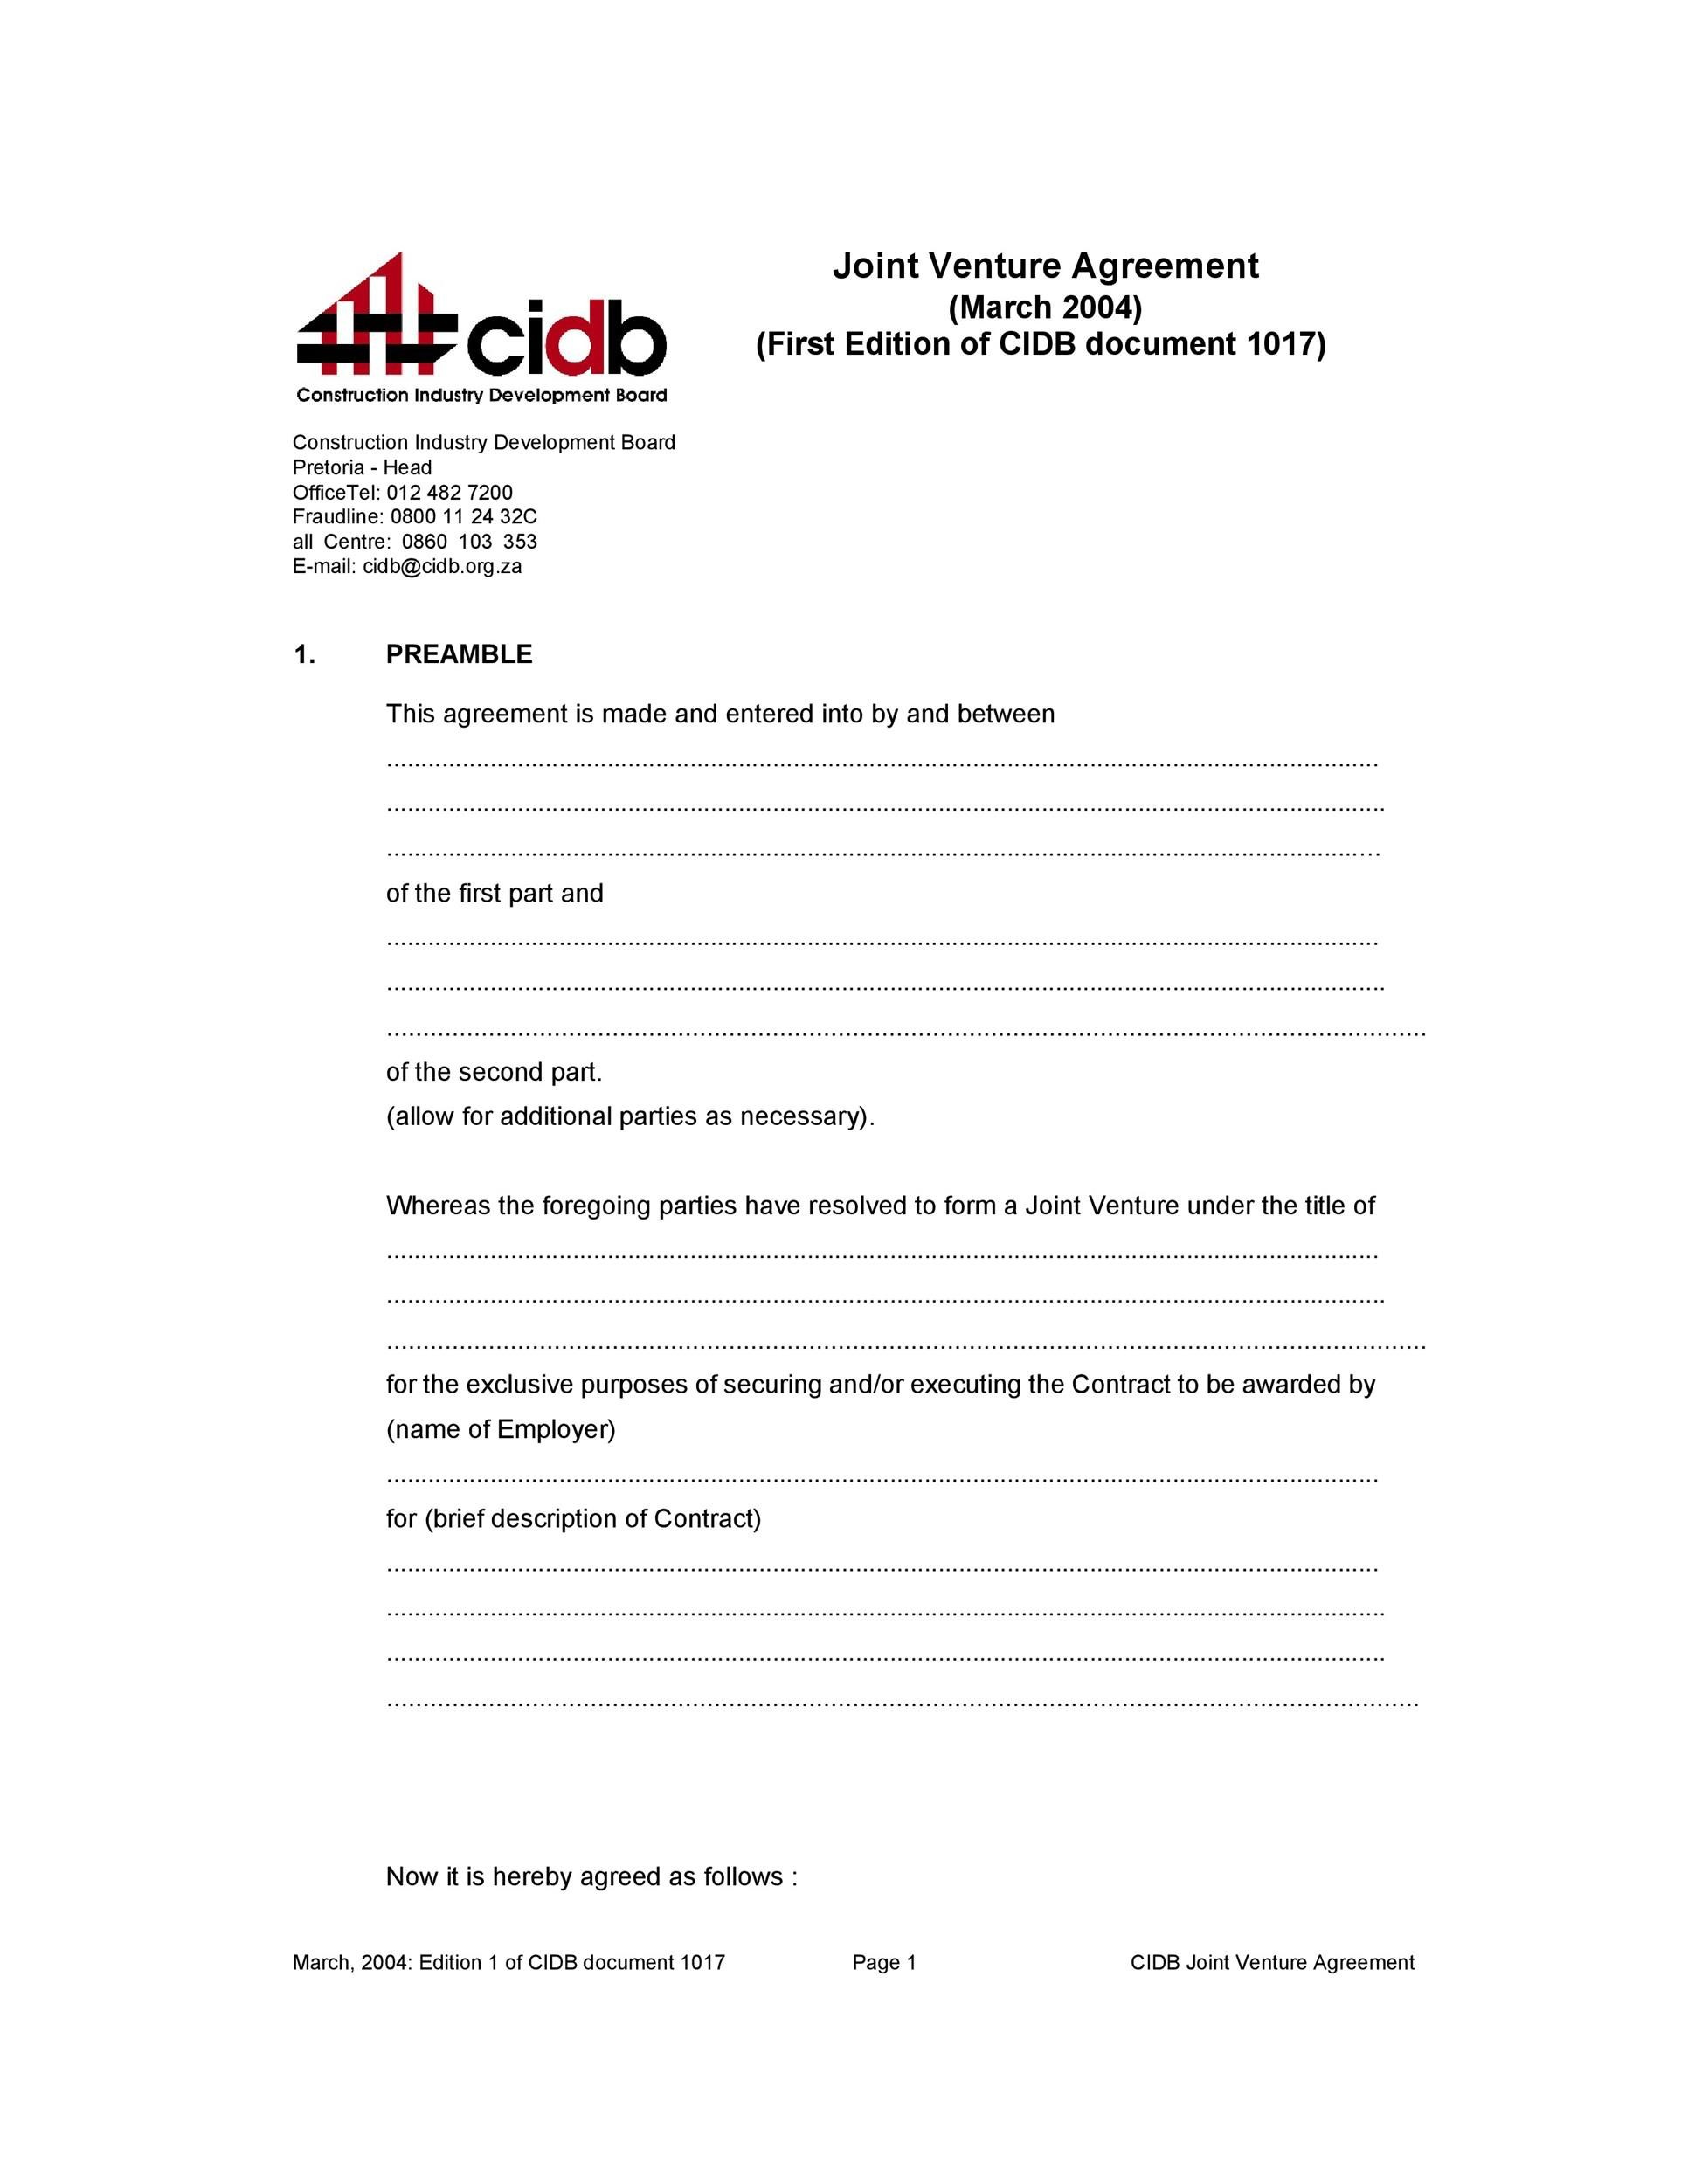 Joint Partnership Agreement Template Templatebillybullock  - joint partnership agreement template